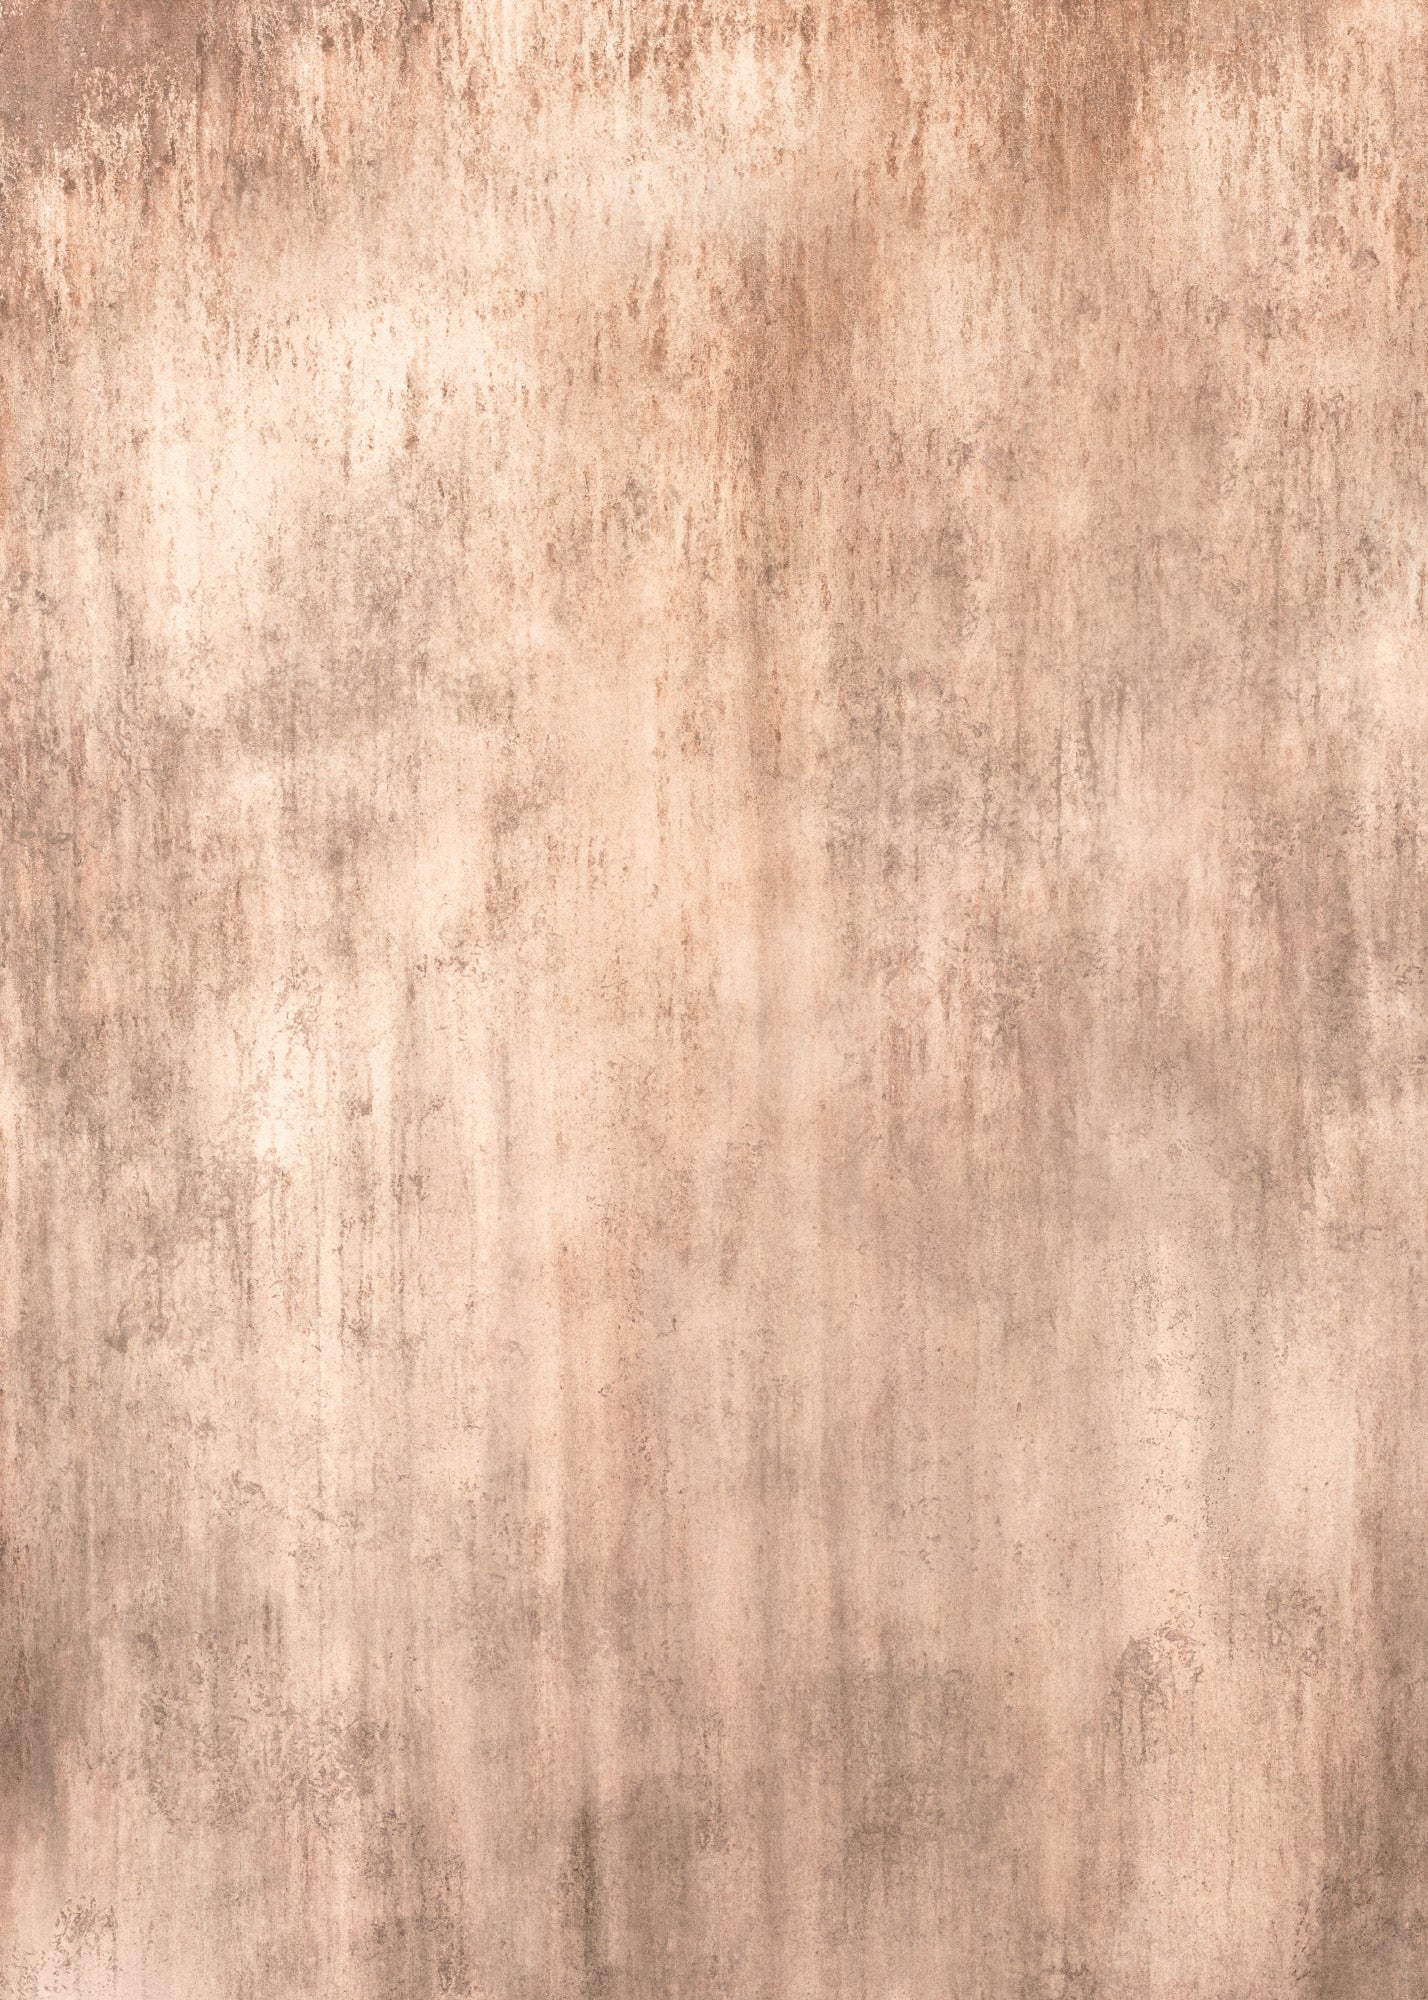 Brutal Beige Large Vinyl Photography Backdrop by Club Backdrops